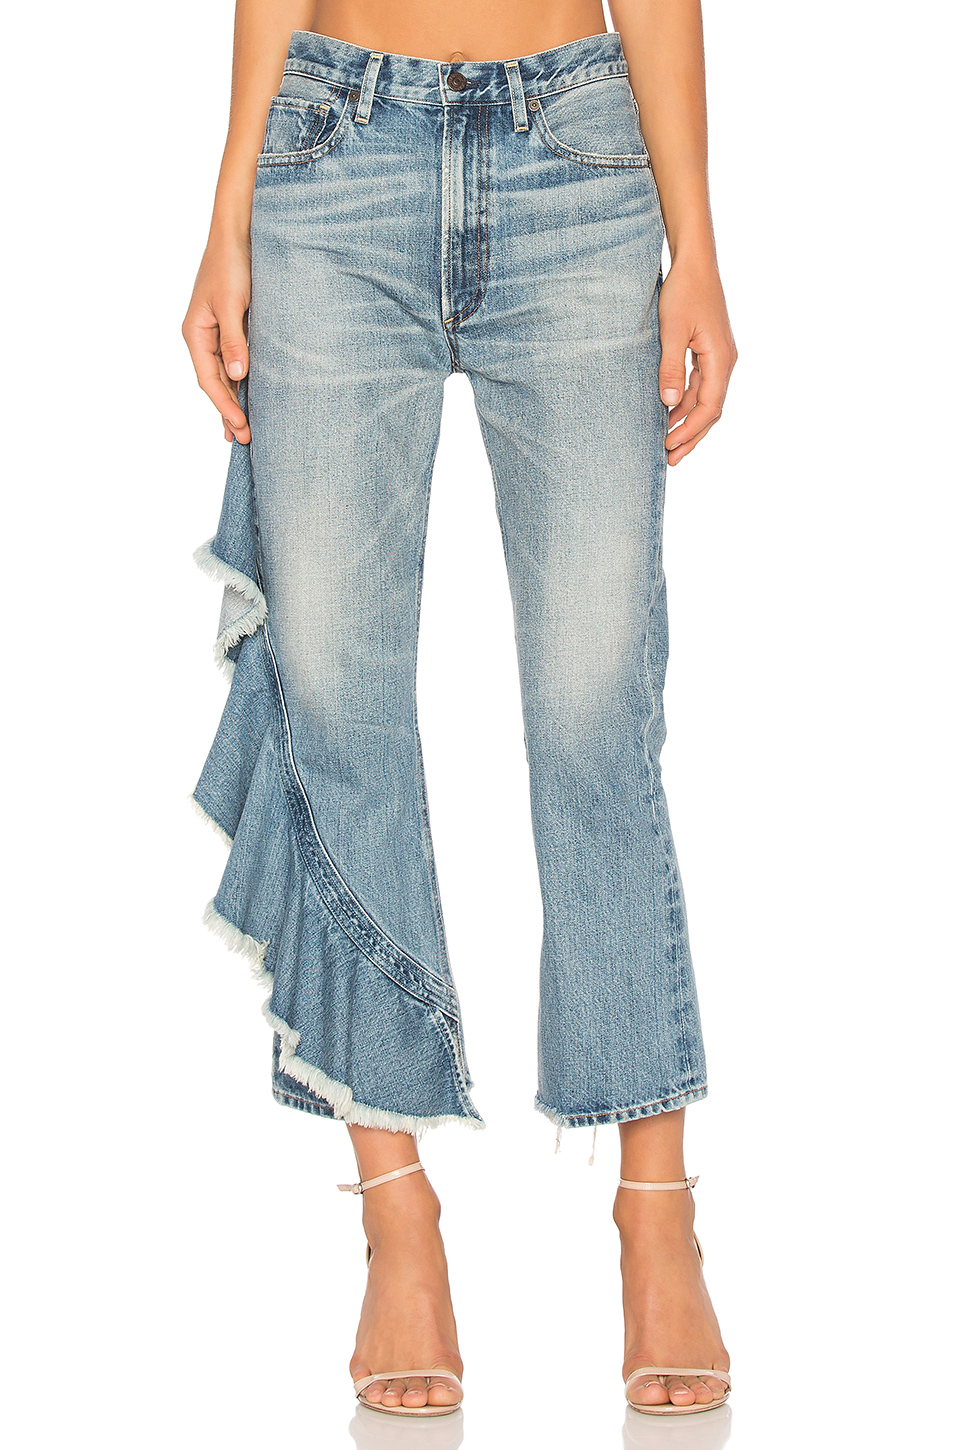 1.CITIZENS OF HUMANITY 'ESTELLA' SIDE RUFFLE JEANS